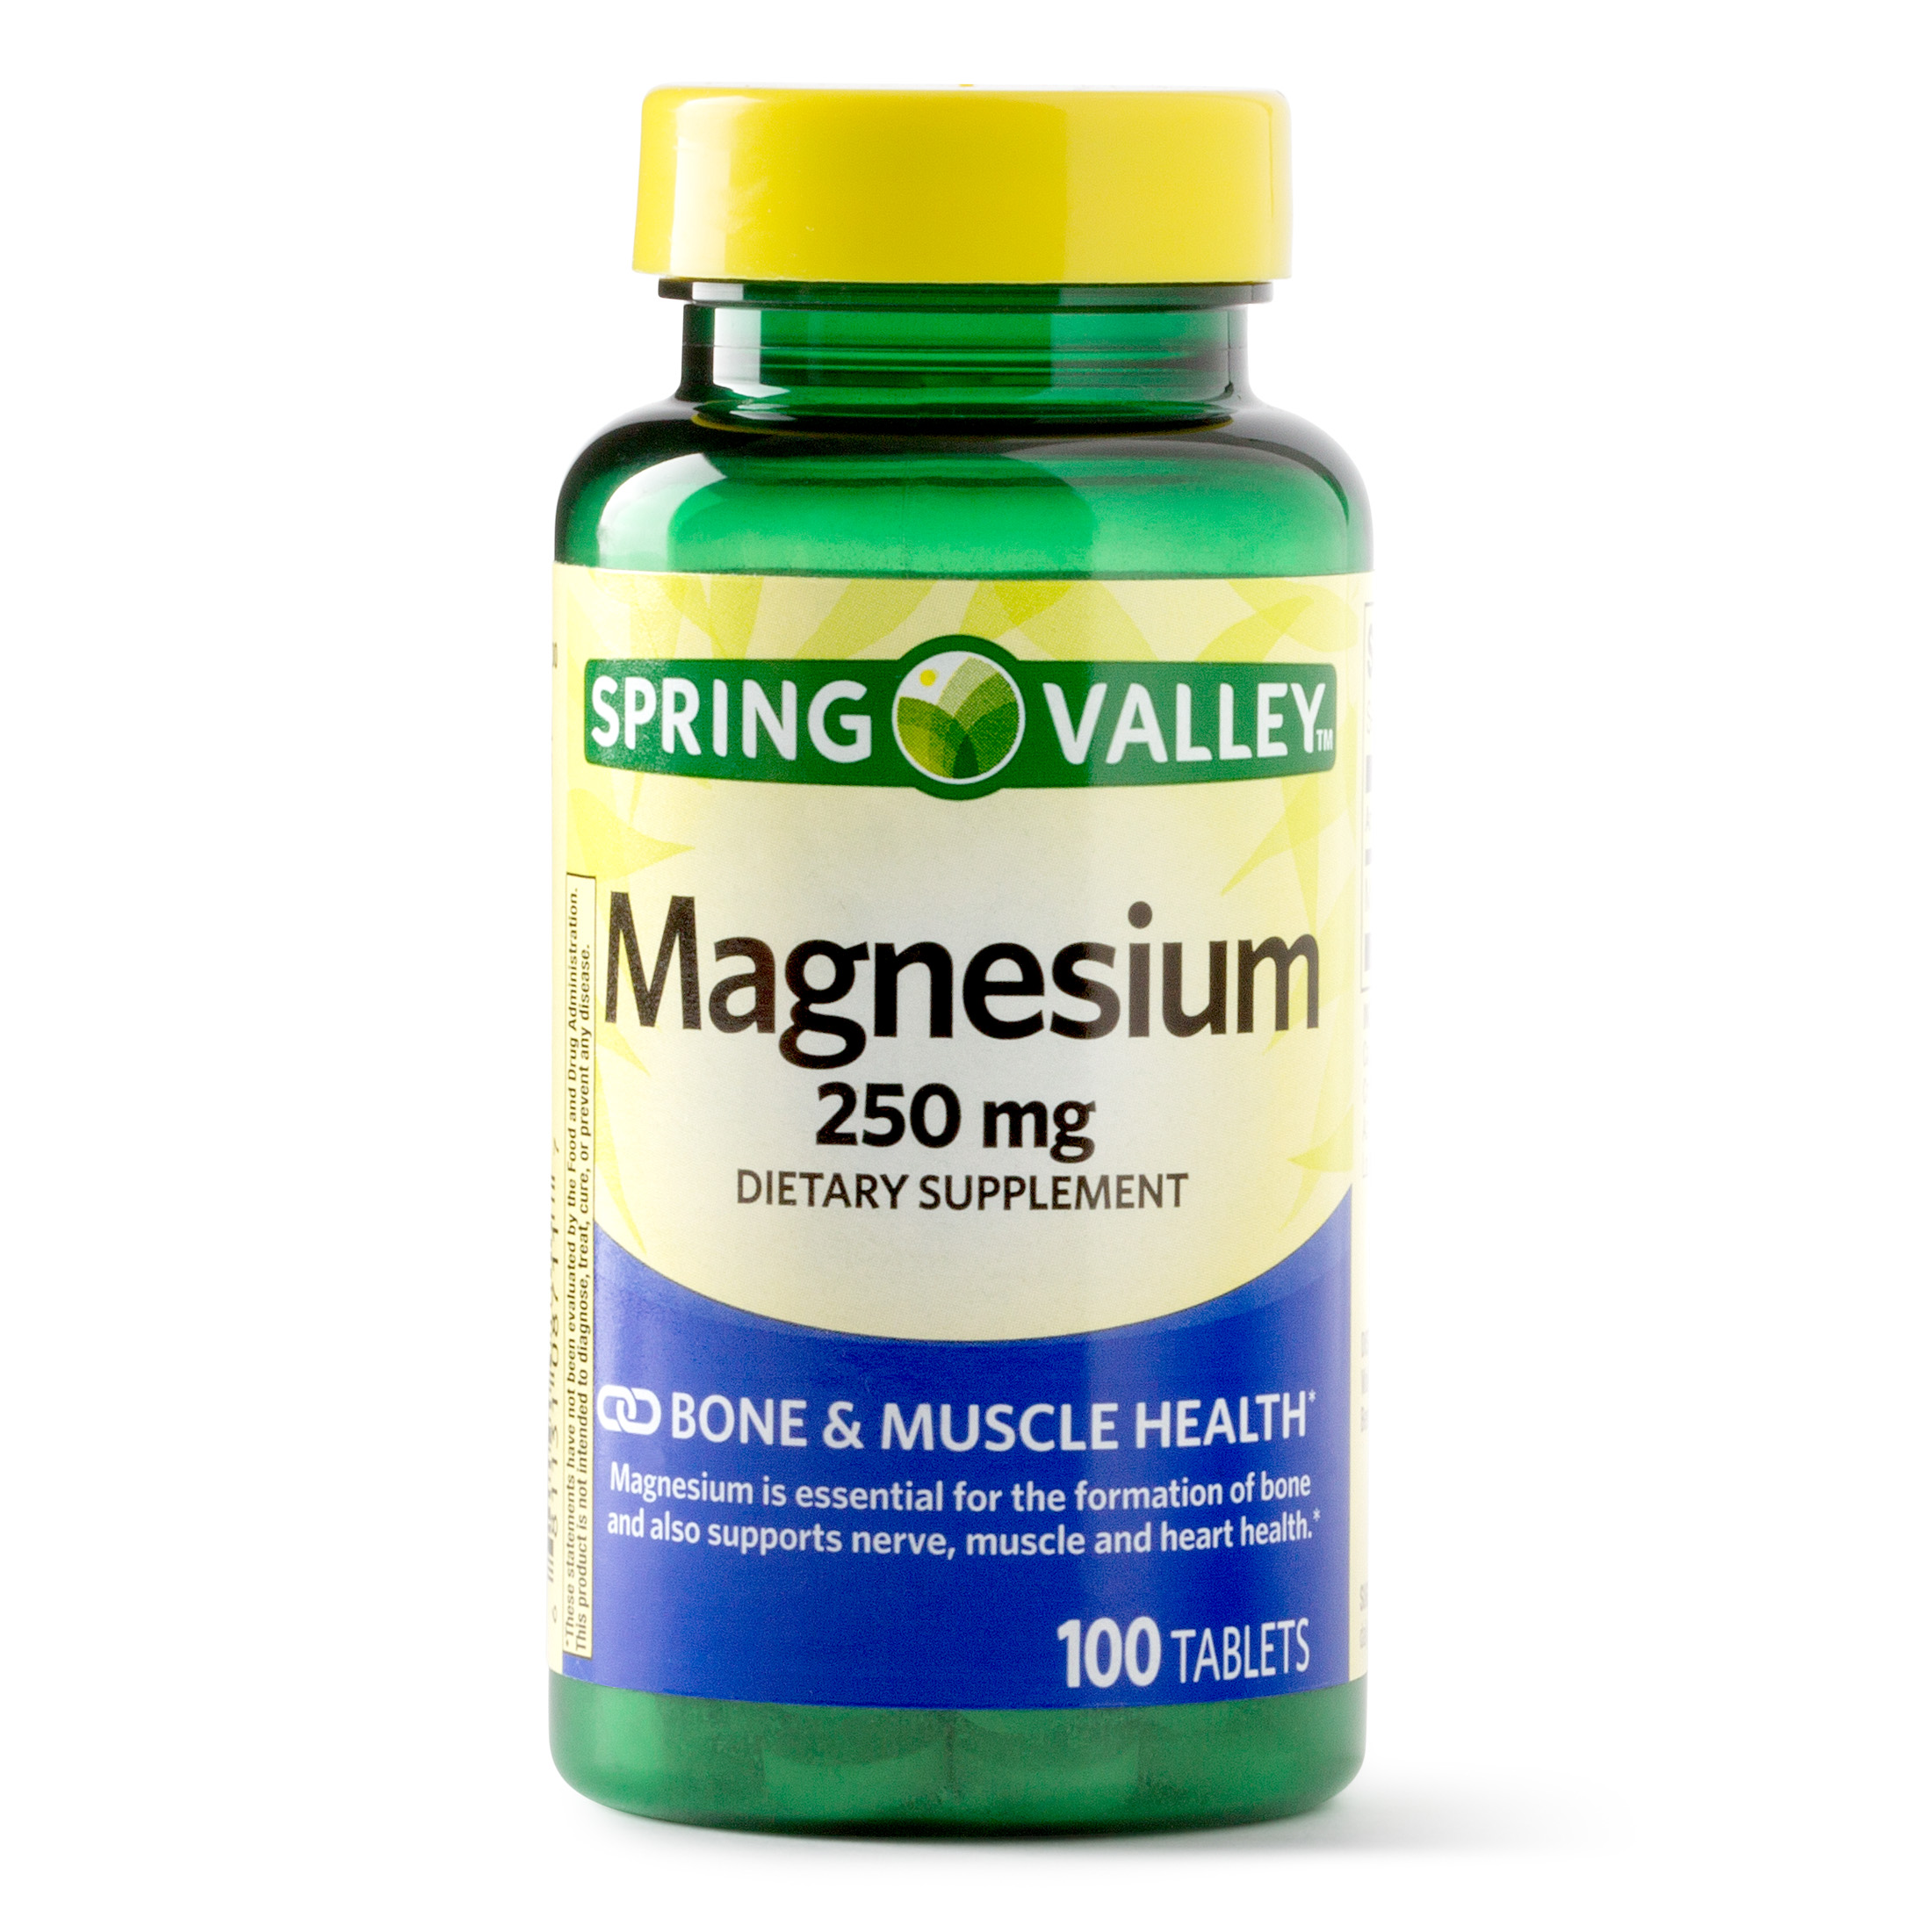 Spring Valley Magnesium Tablets, 250 mg, 100 Ct